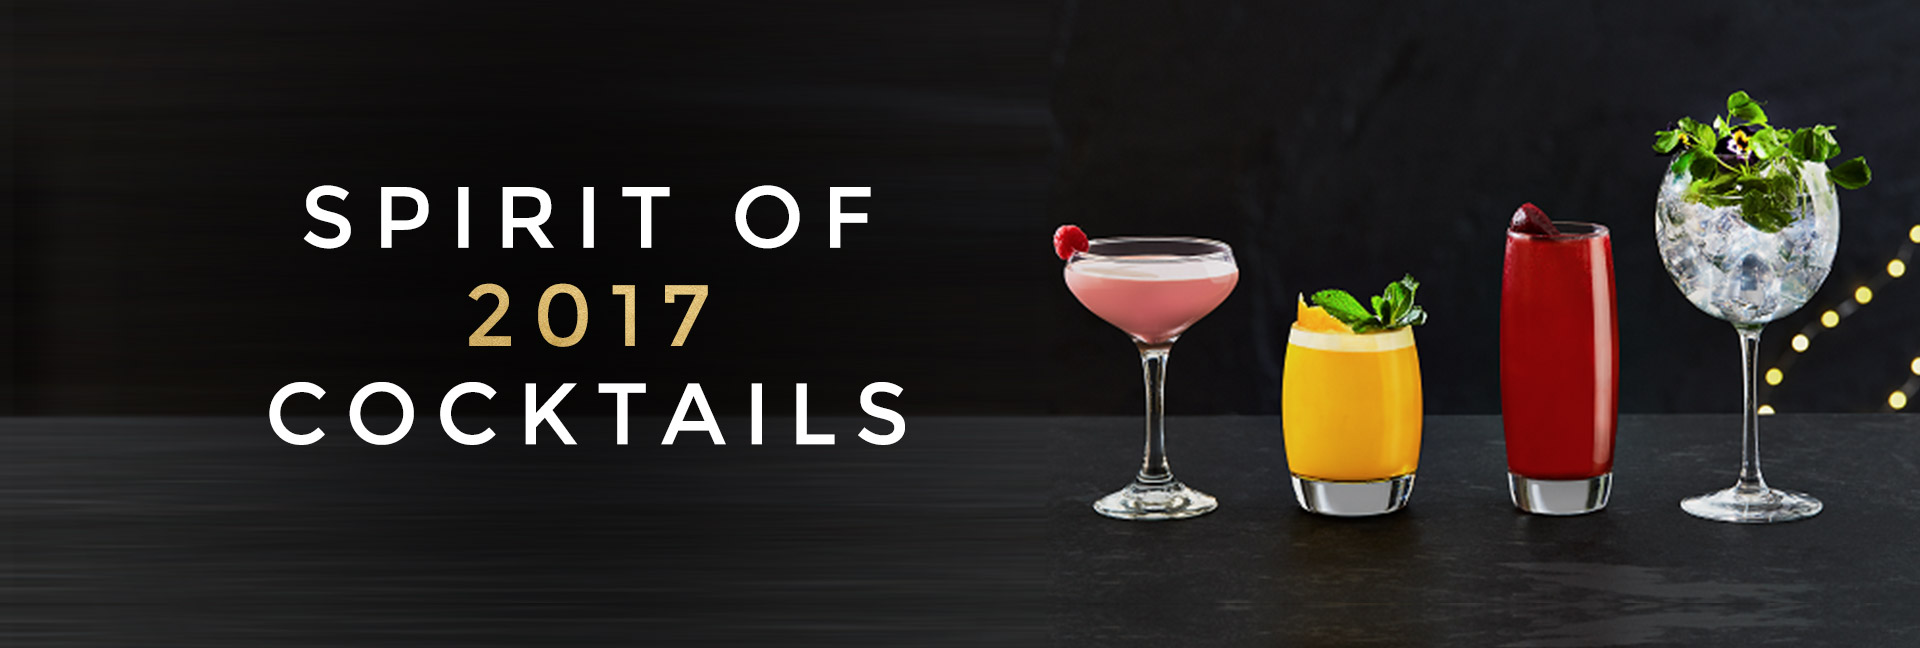 Spirit of 2017 cocktails at All Bar One Nottingham